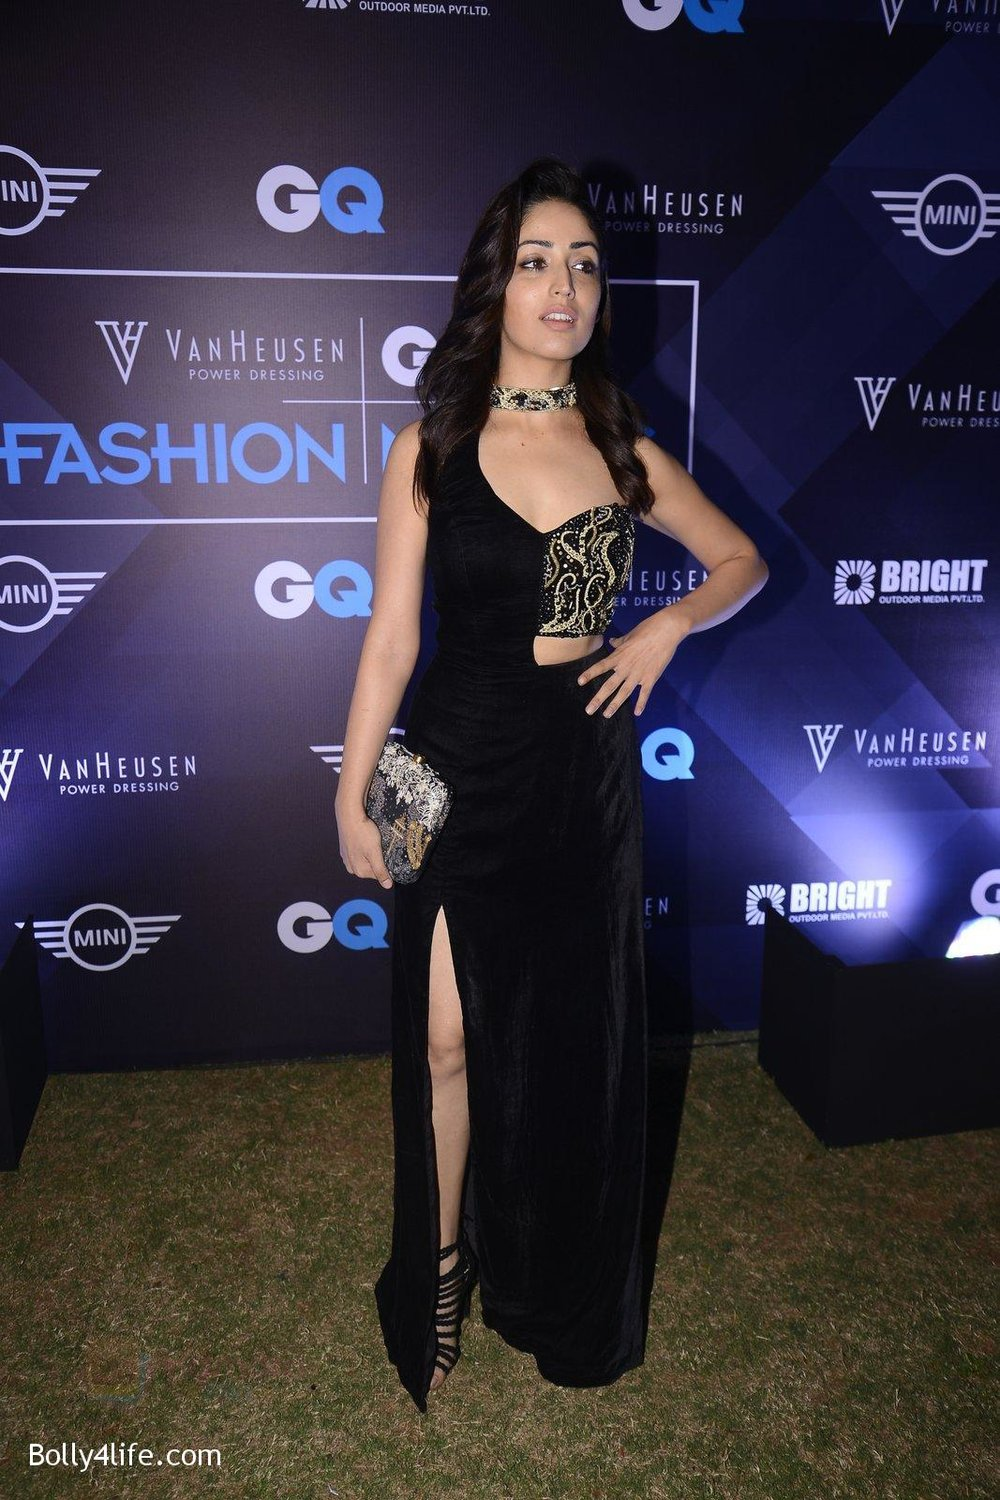 hpse_fullsize_34724_892713639_Yami-Gautam-at-GQ-fashion-nights-on-3rd-Dec-2016-239_58450fd9ec06e.jpg